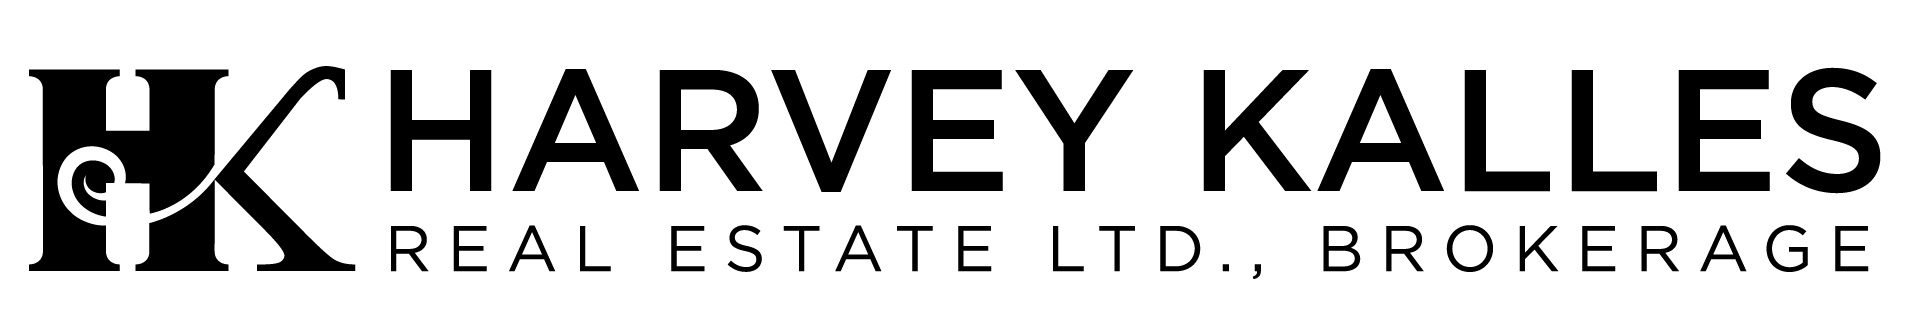 Harvey Kalles Real Estate Ltd., Brokerage *